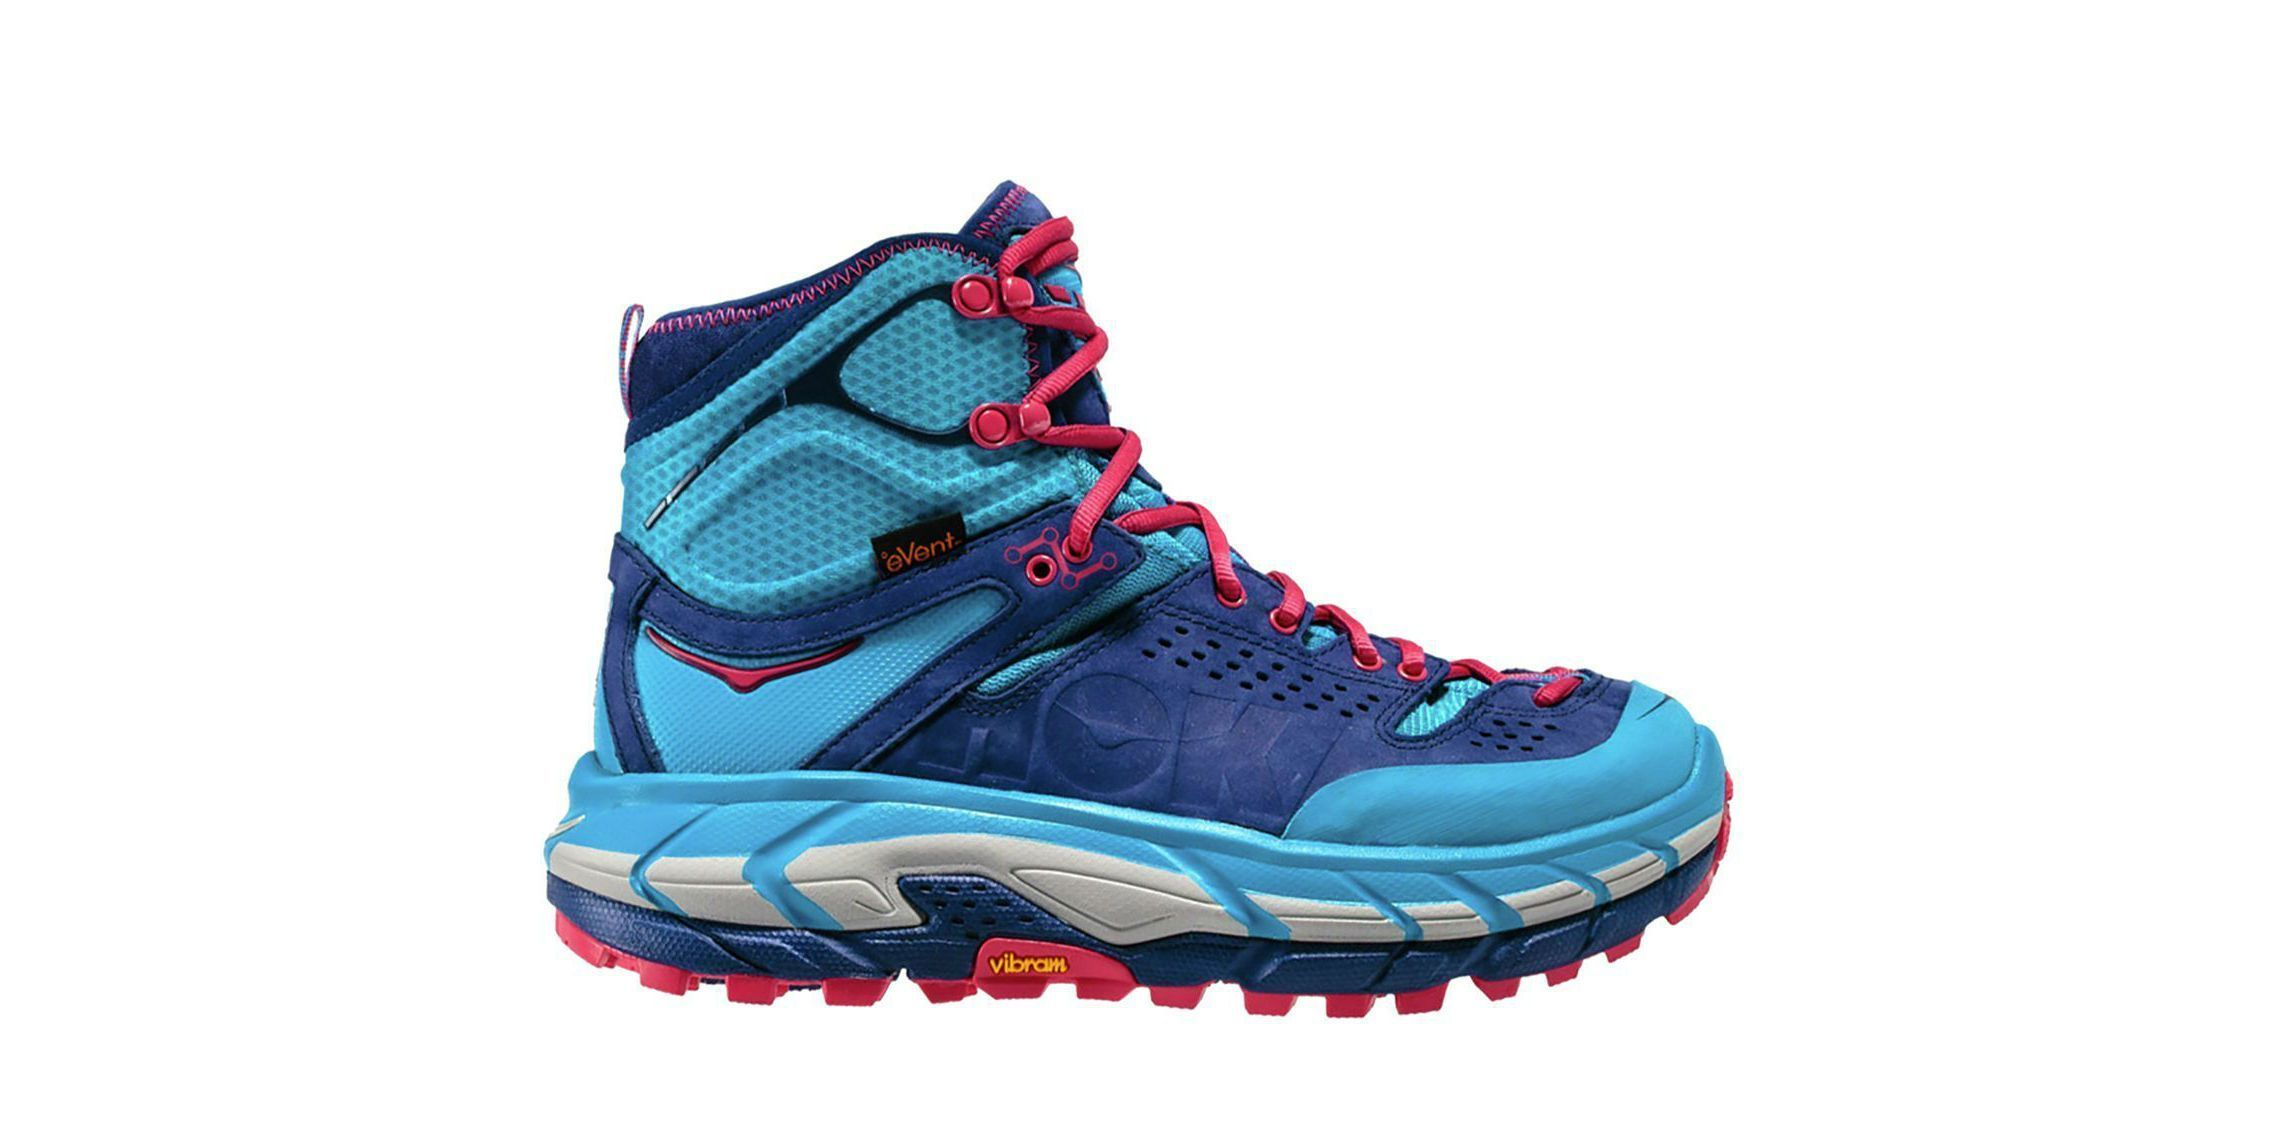 brand new 79c1c cbfc2 Best Hiking Boots 2019 | New Hiking Boots and Trail Running ...